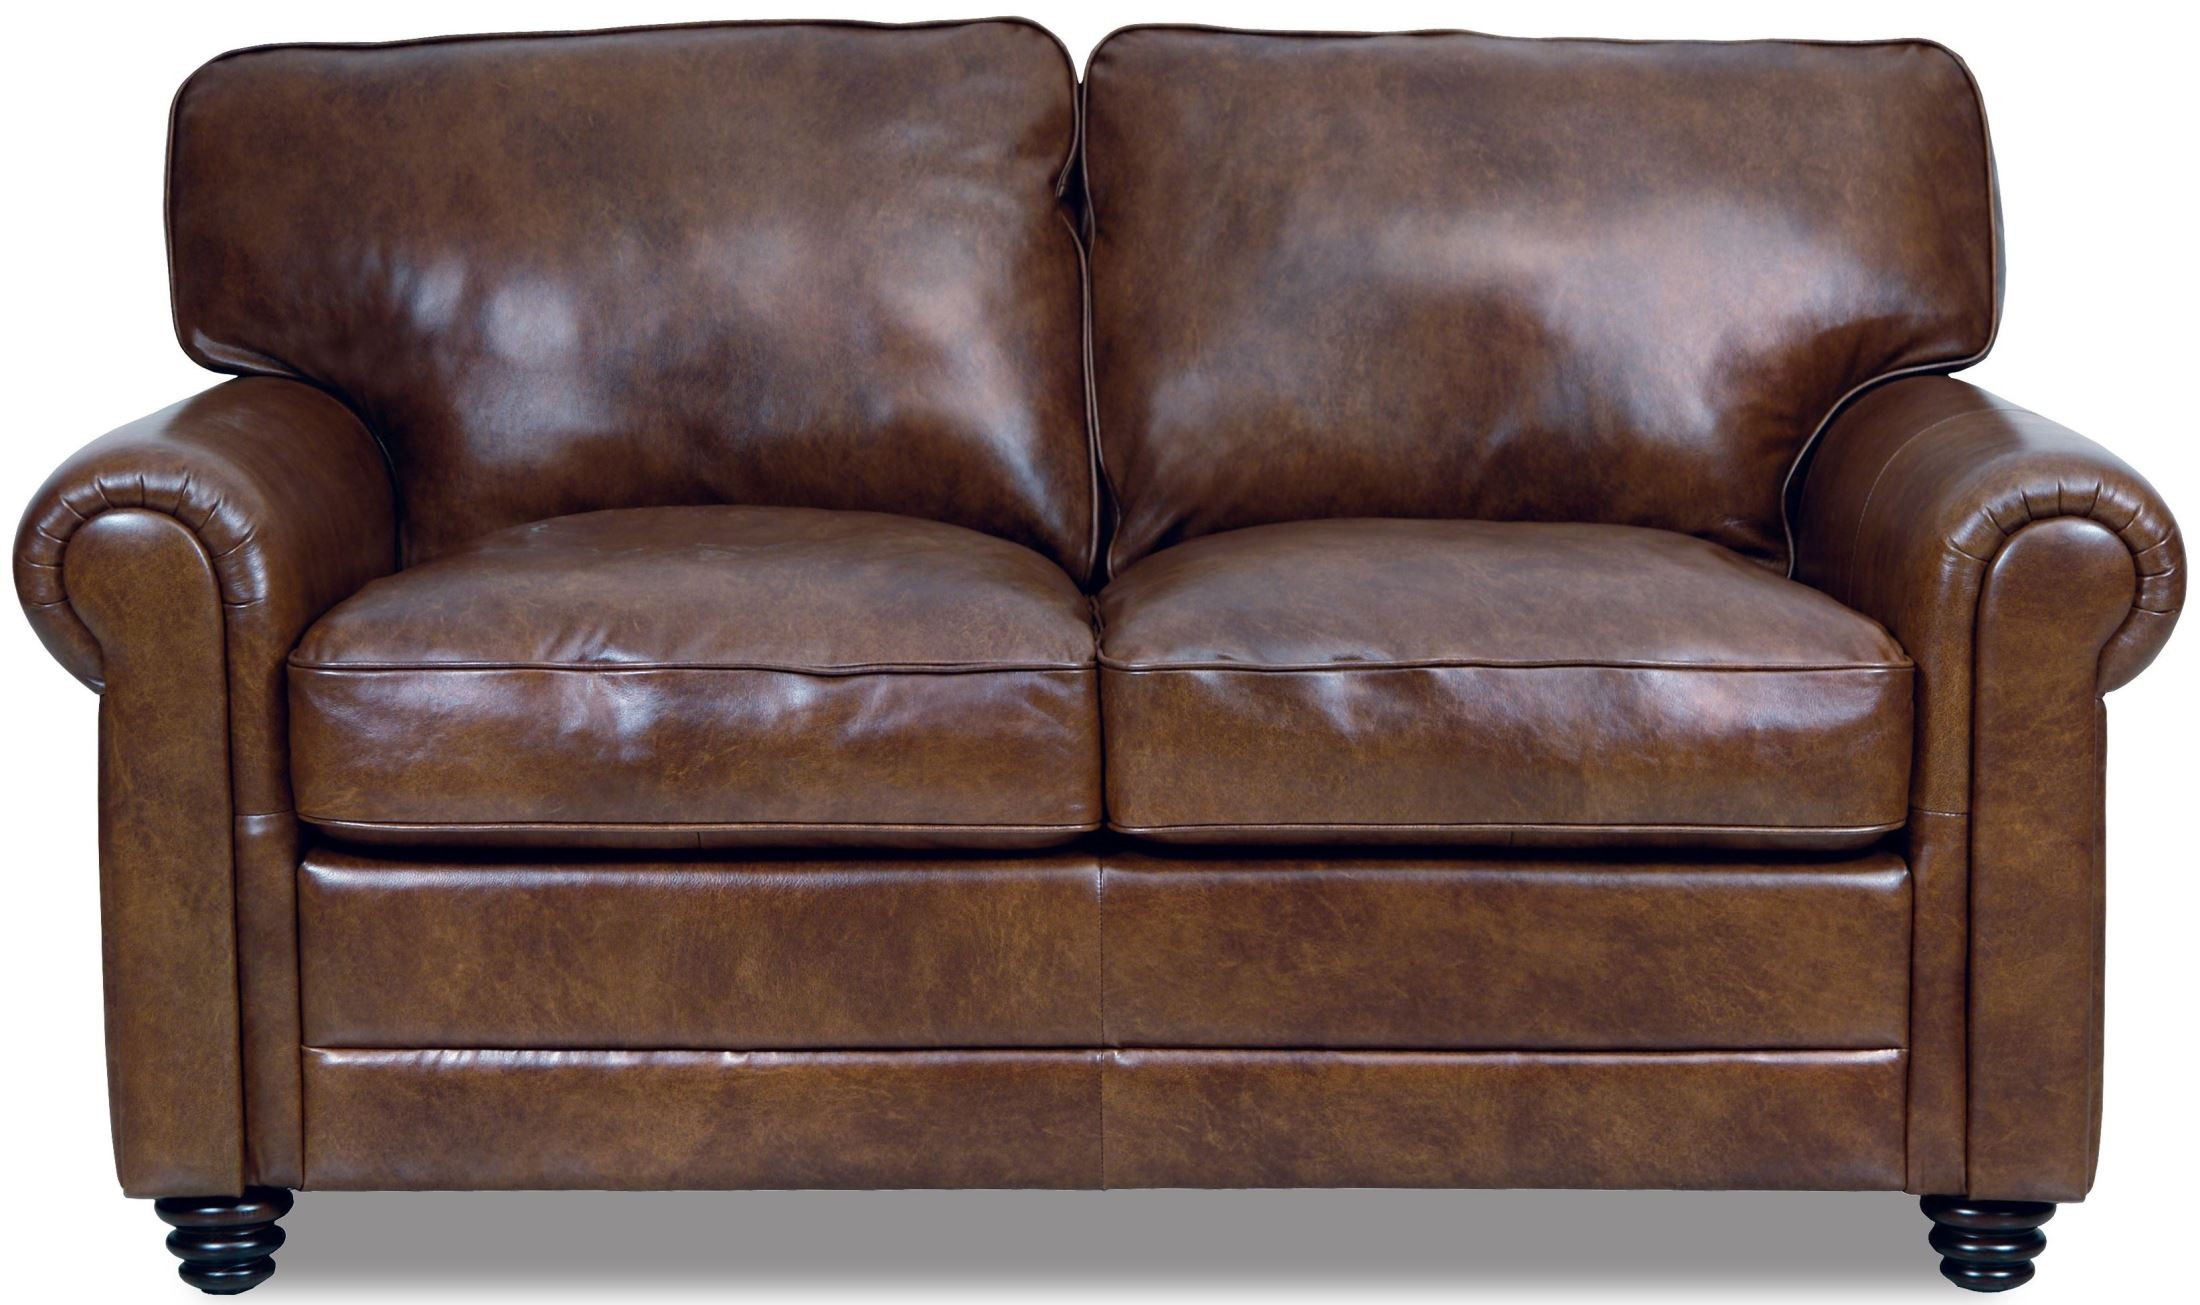 Andrew Leather Loveseat From Luke Leather | Coleman Furniture Inside Andrew Leather Sofa Chairs (View 8 of 25)